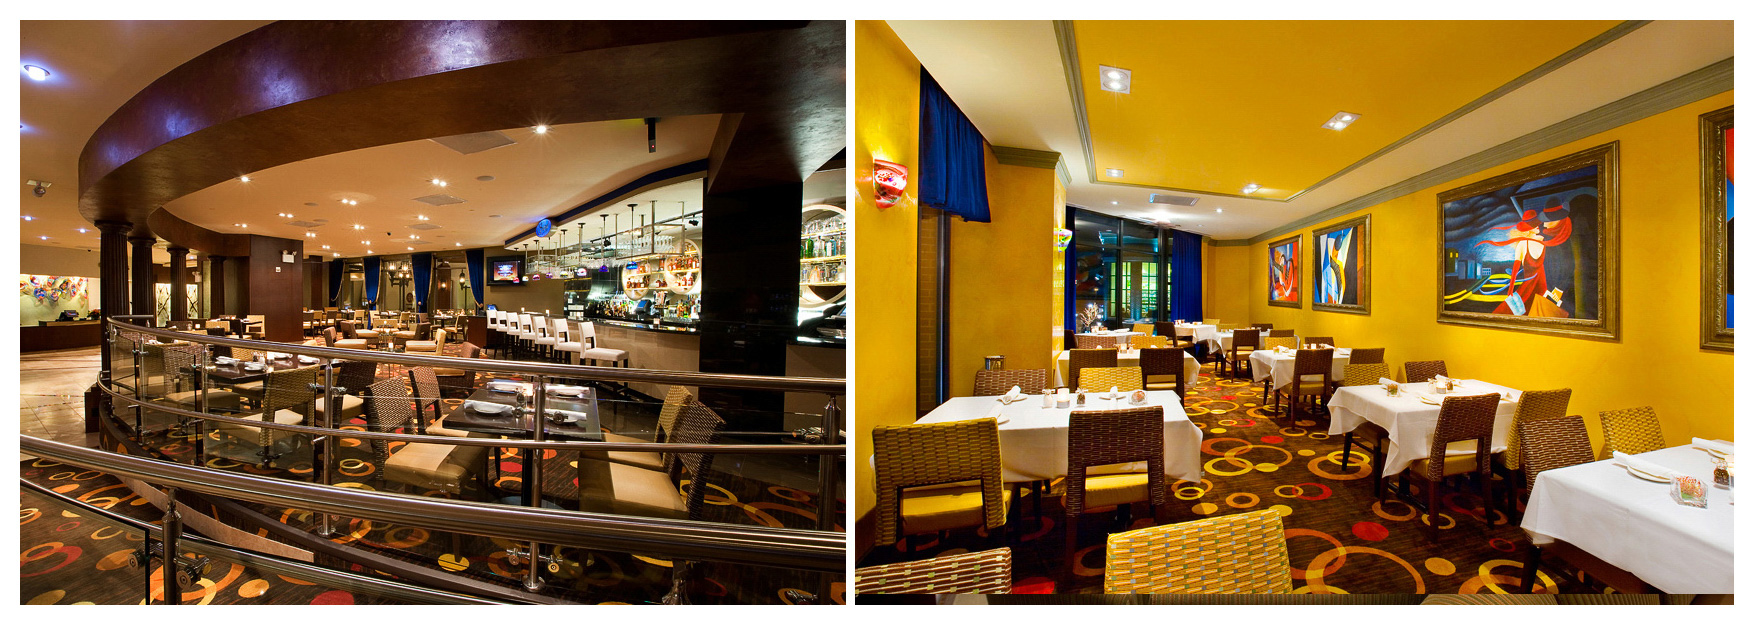 Hospitality and restaurant Interior Design Photography